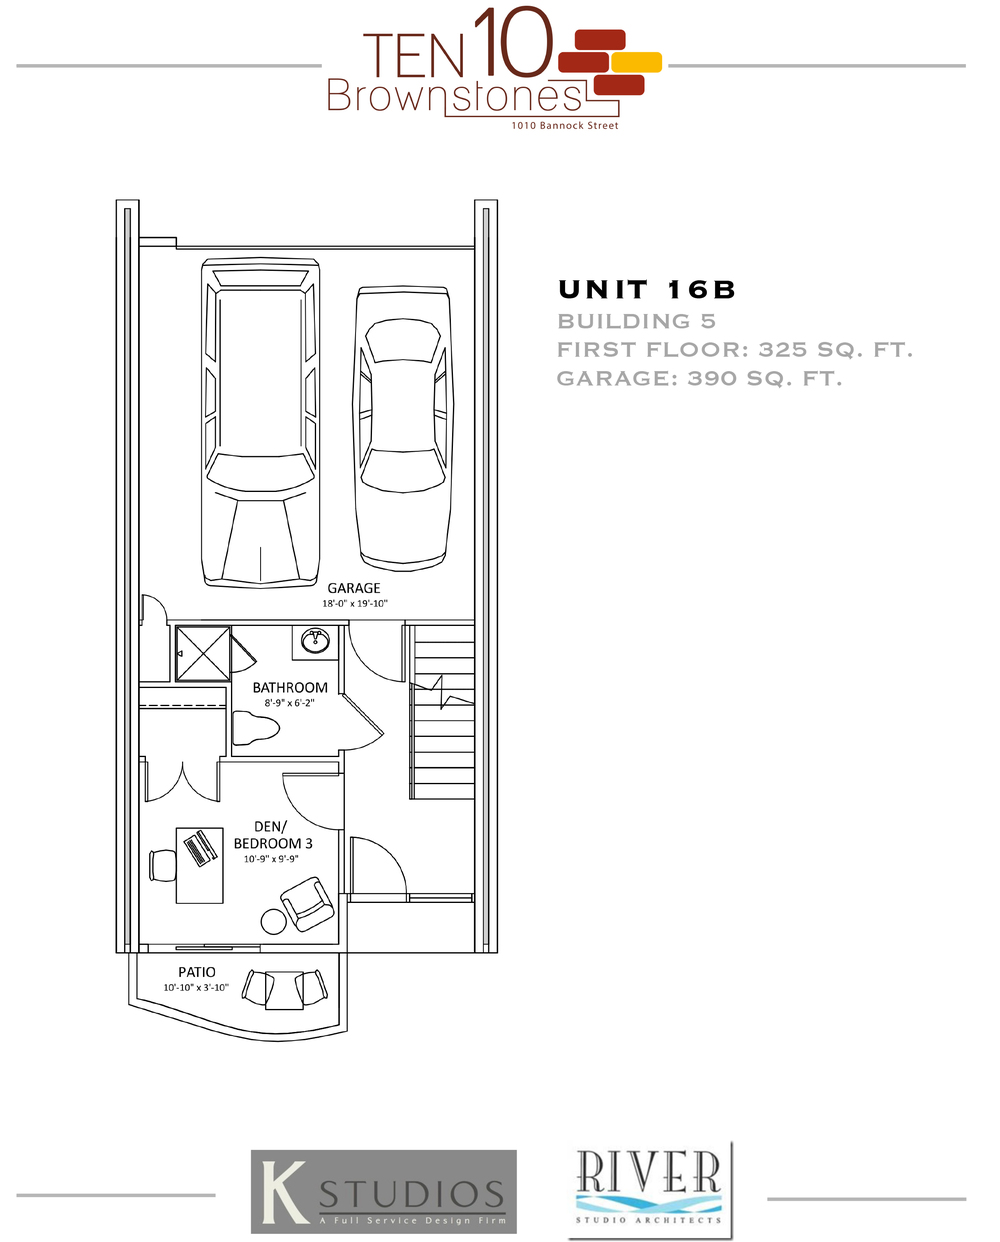 Click image to view & download Unit 16B floor plan